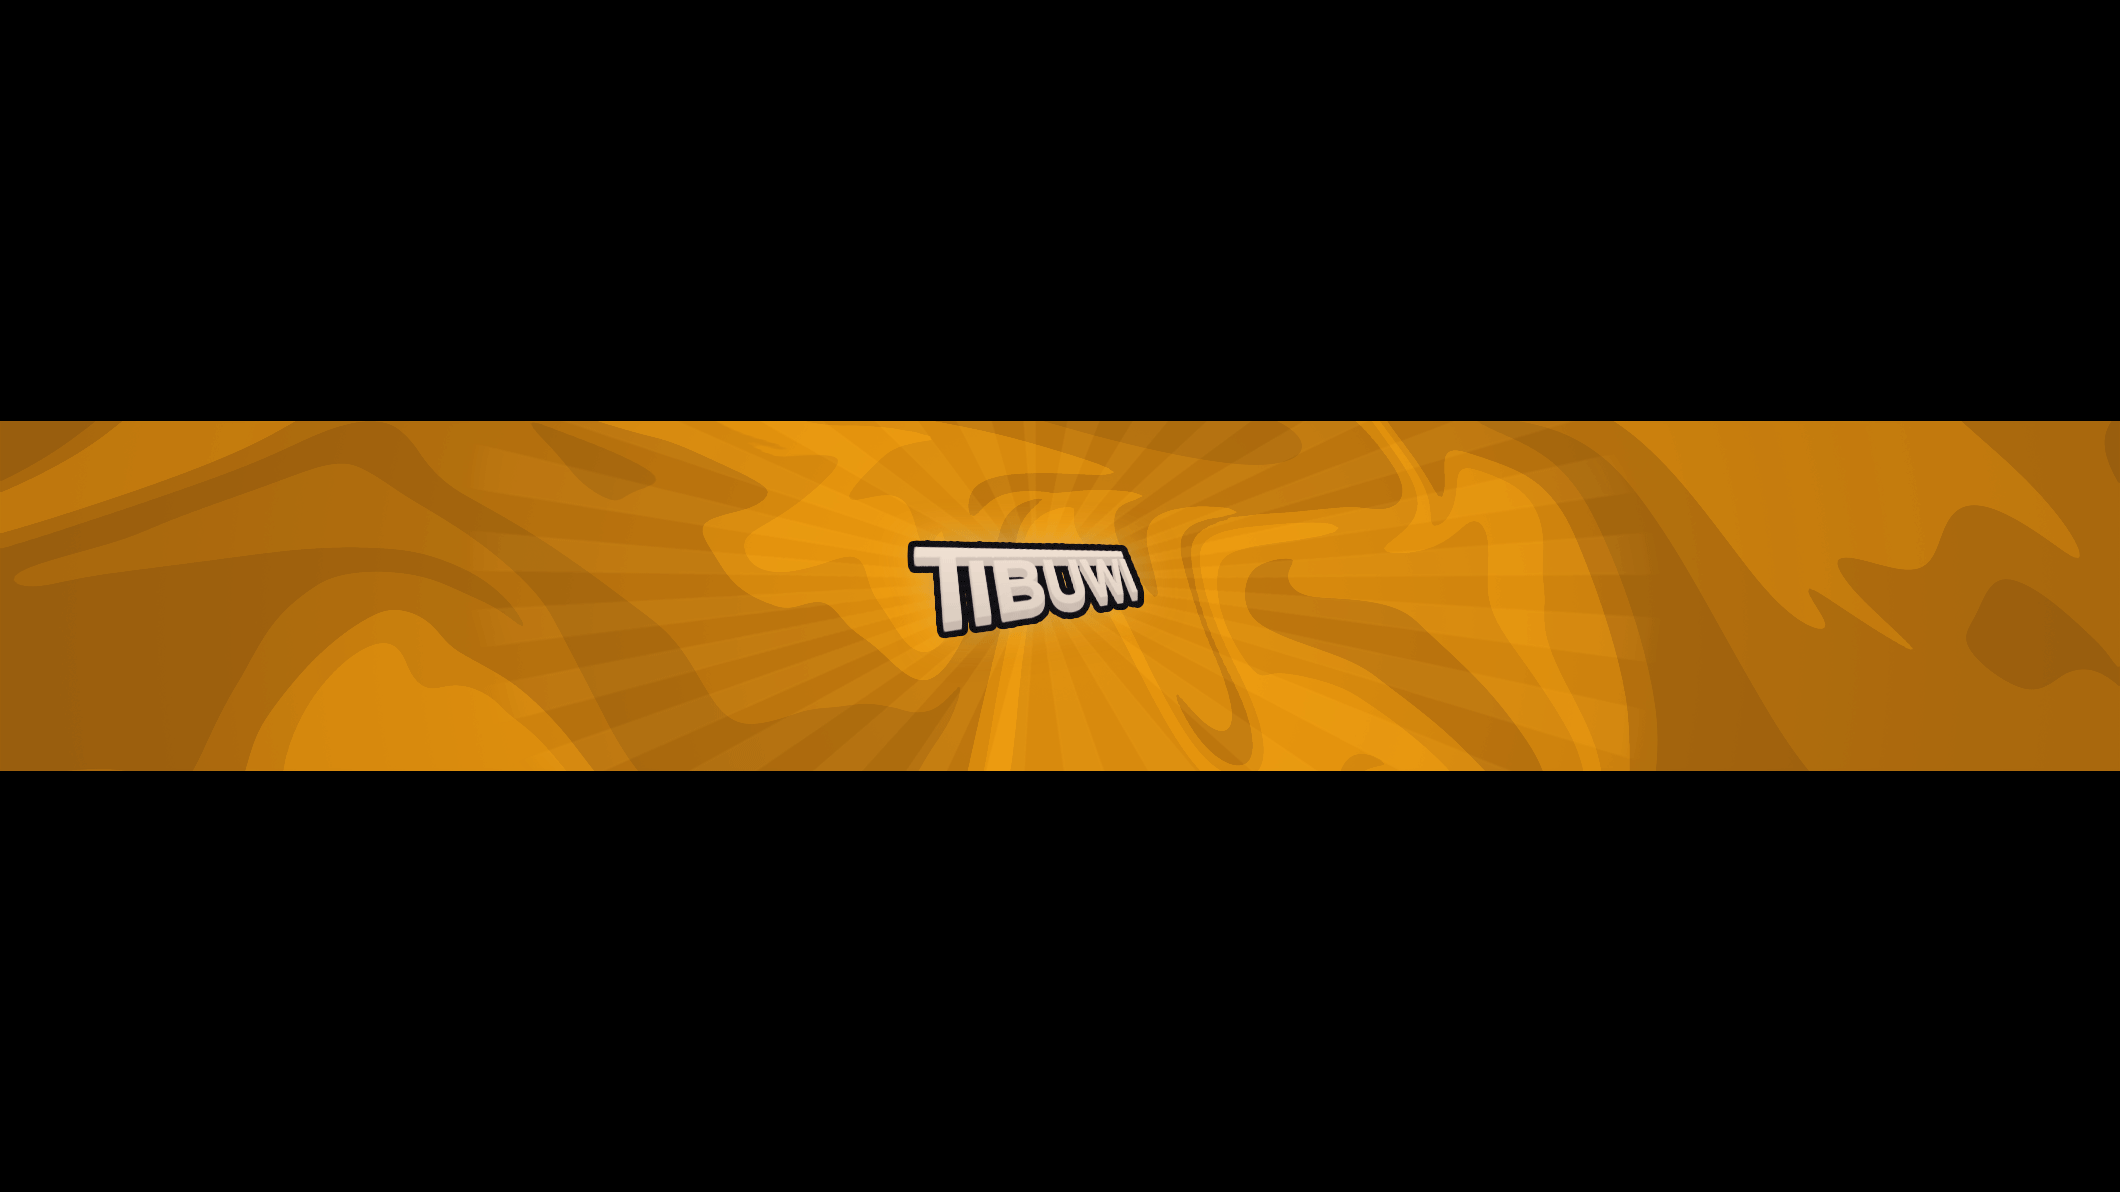 yt banner 216 by thedeath1